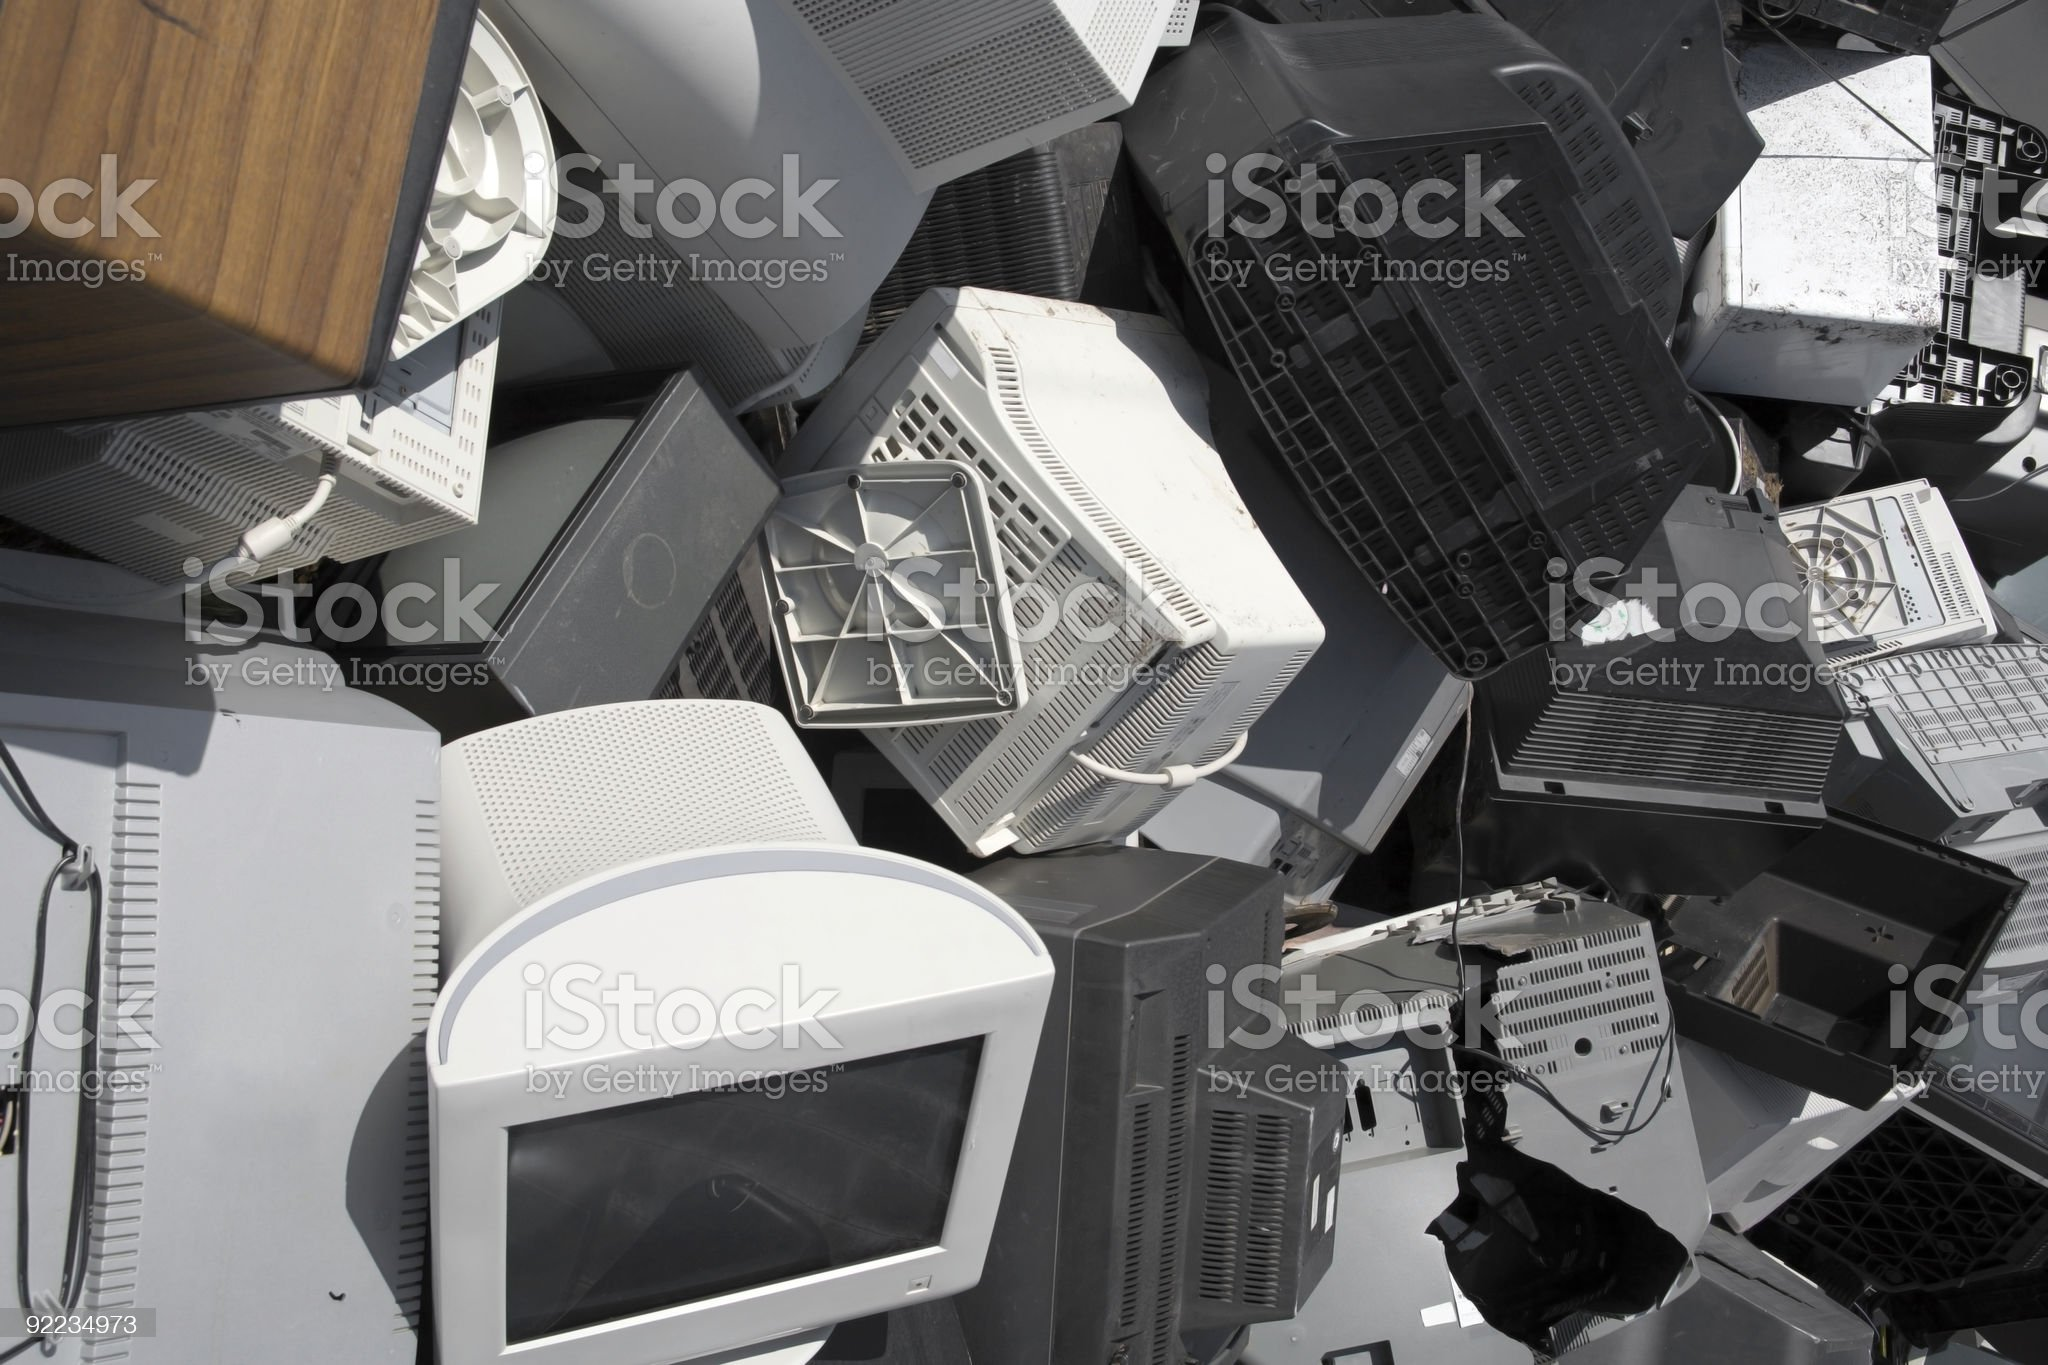 tv & computer screens - waste disposal and recycling royalty-free stock photo